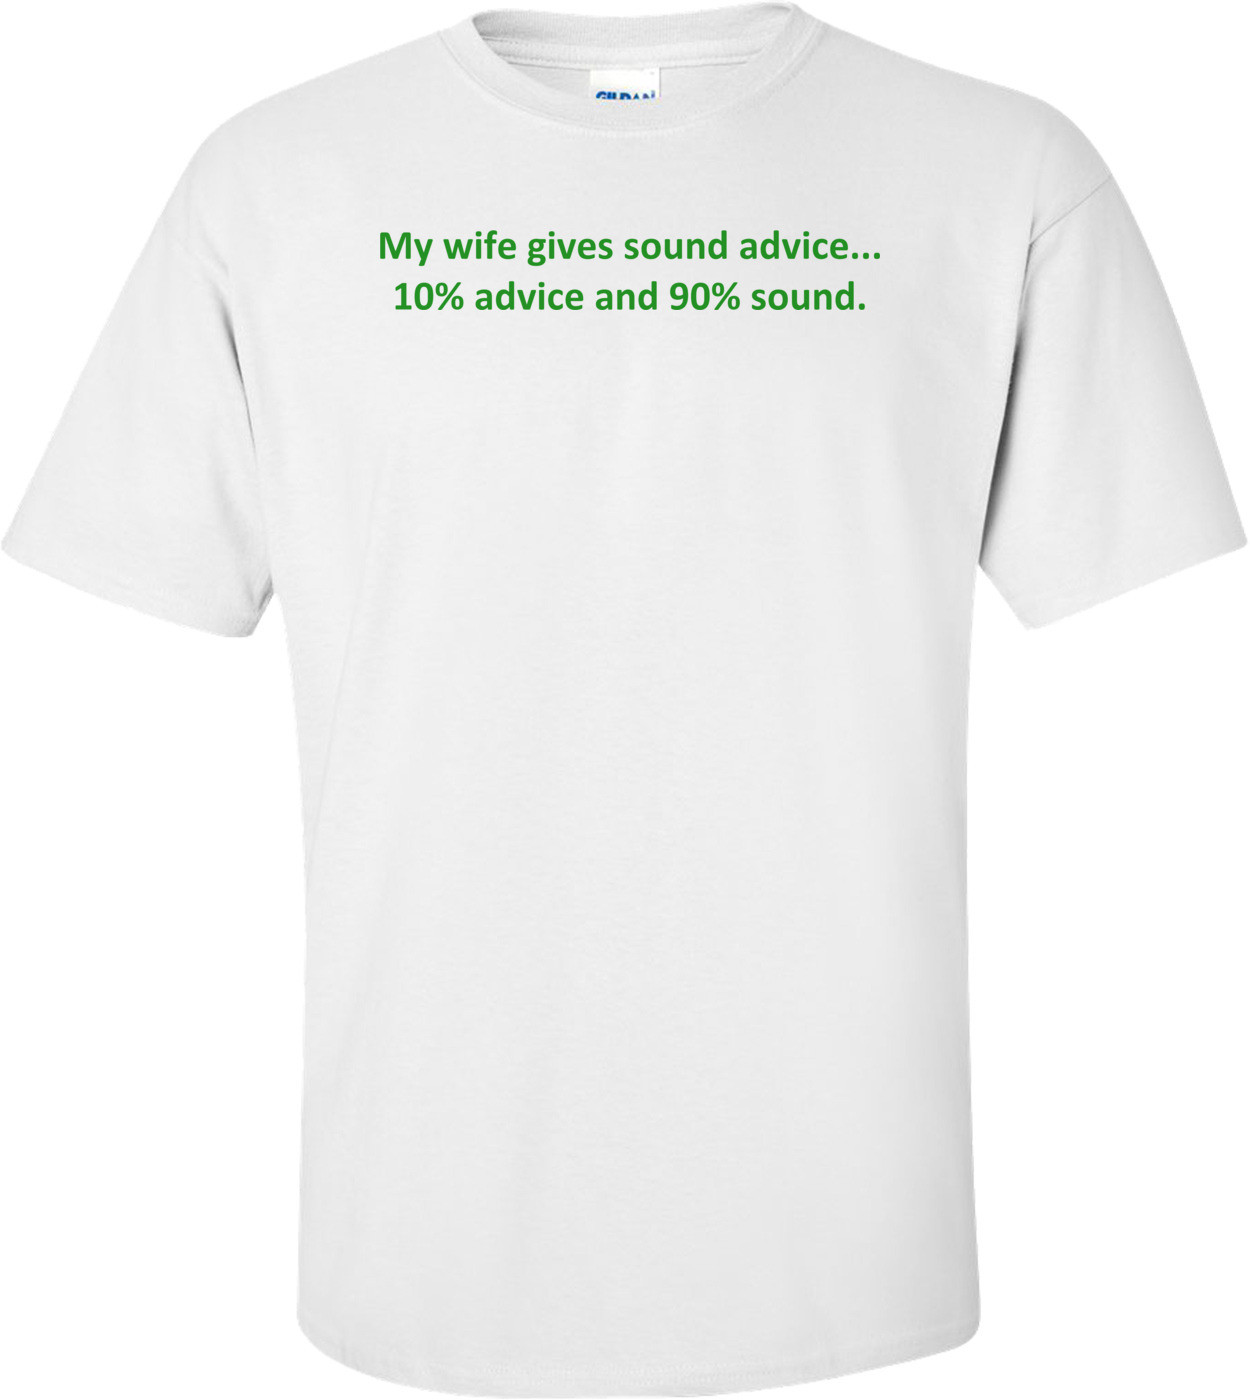 My wife gives sound advice... 10% advice and 90% sound. Shirt